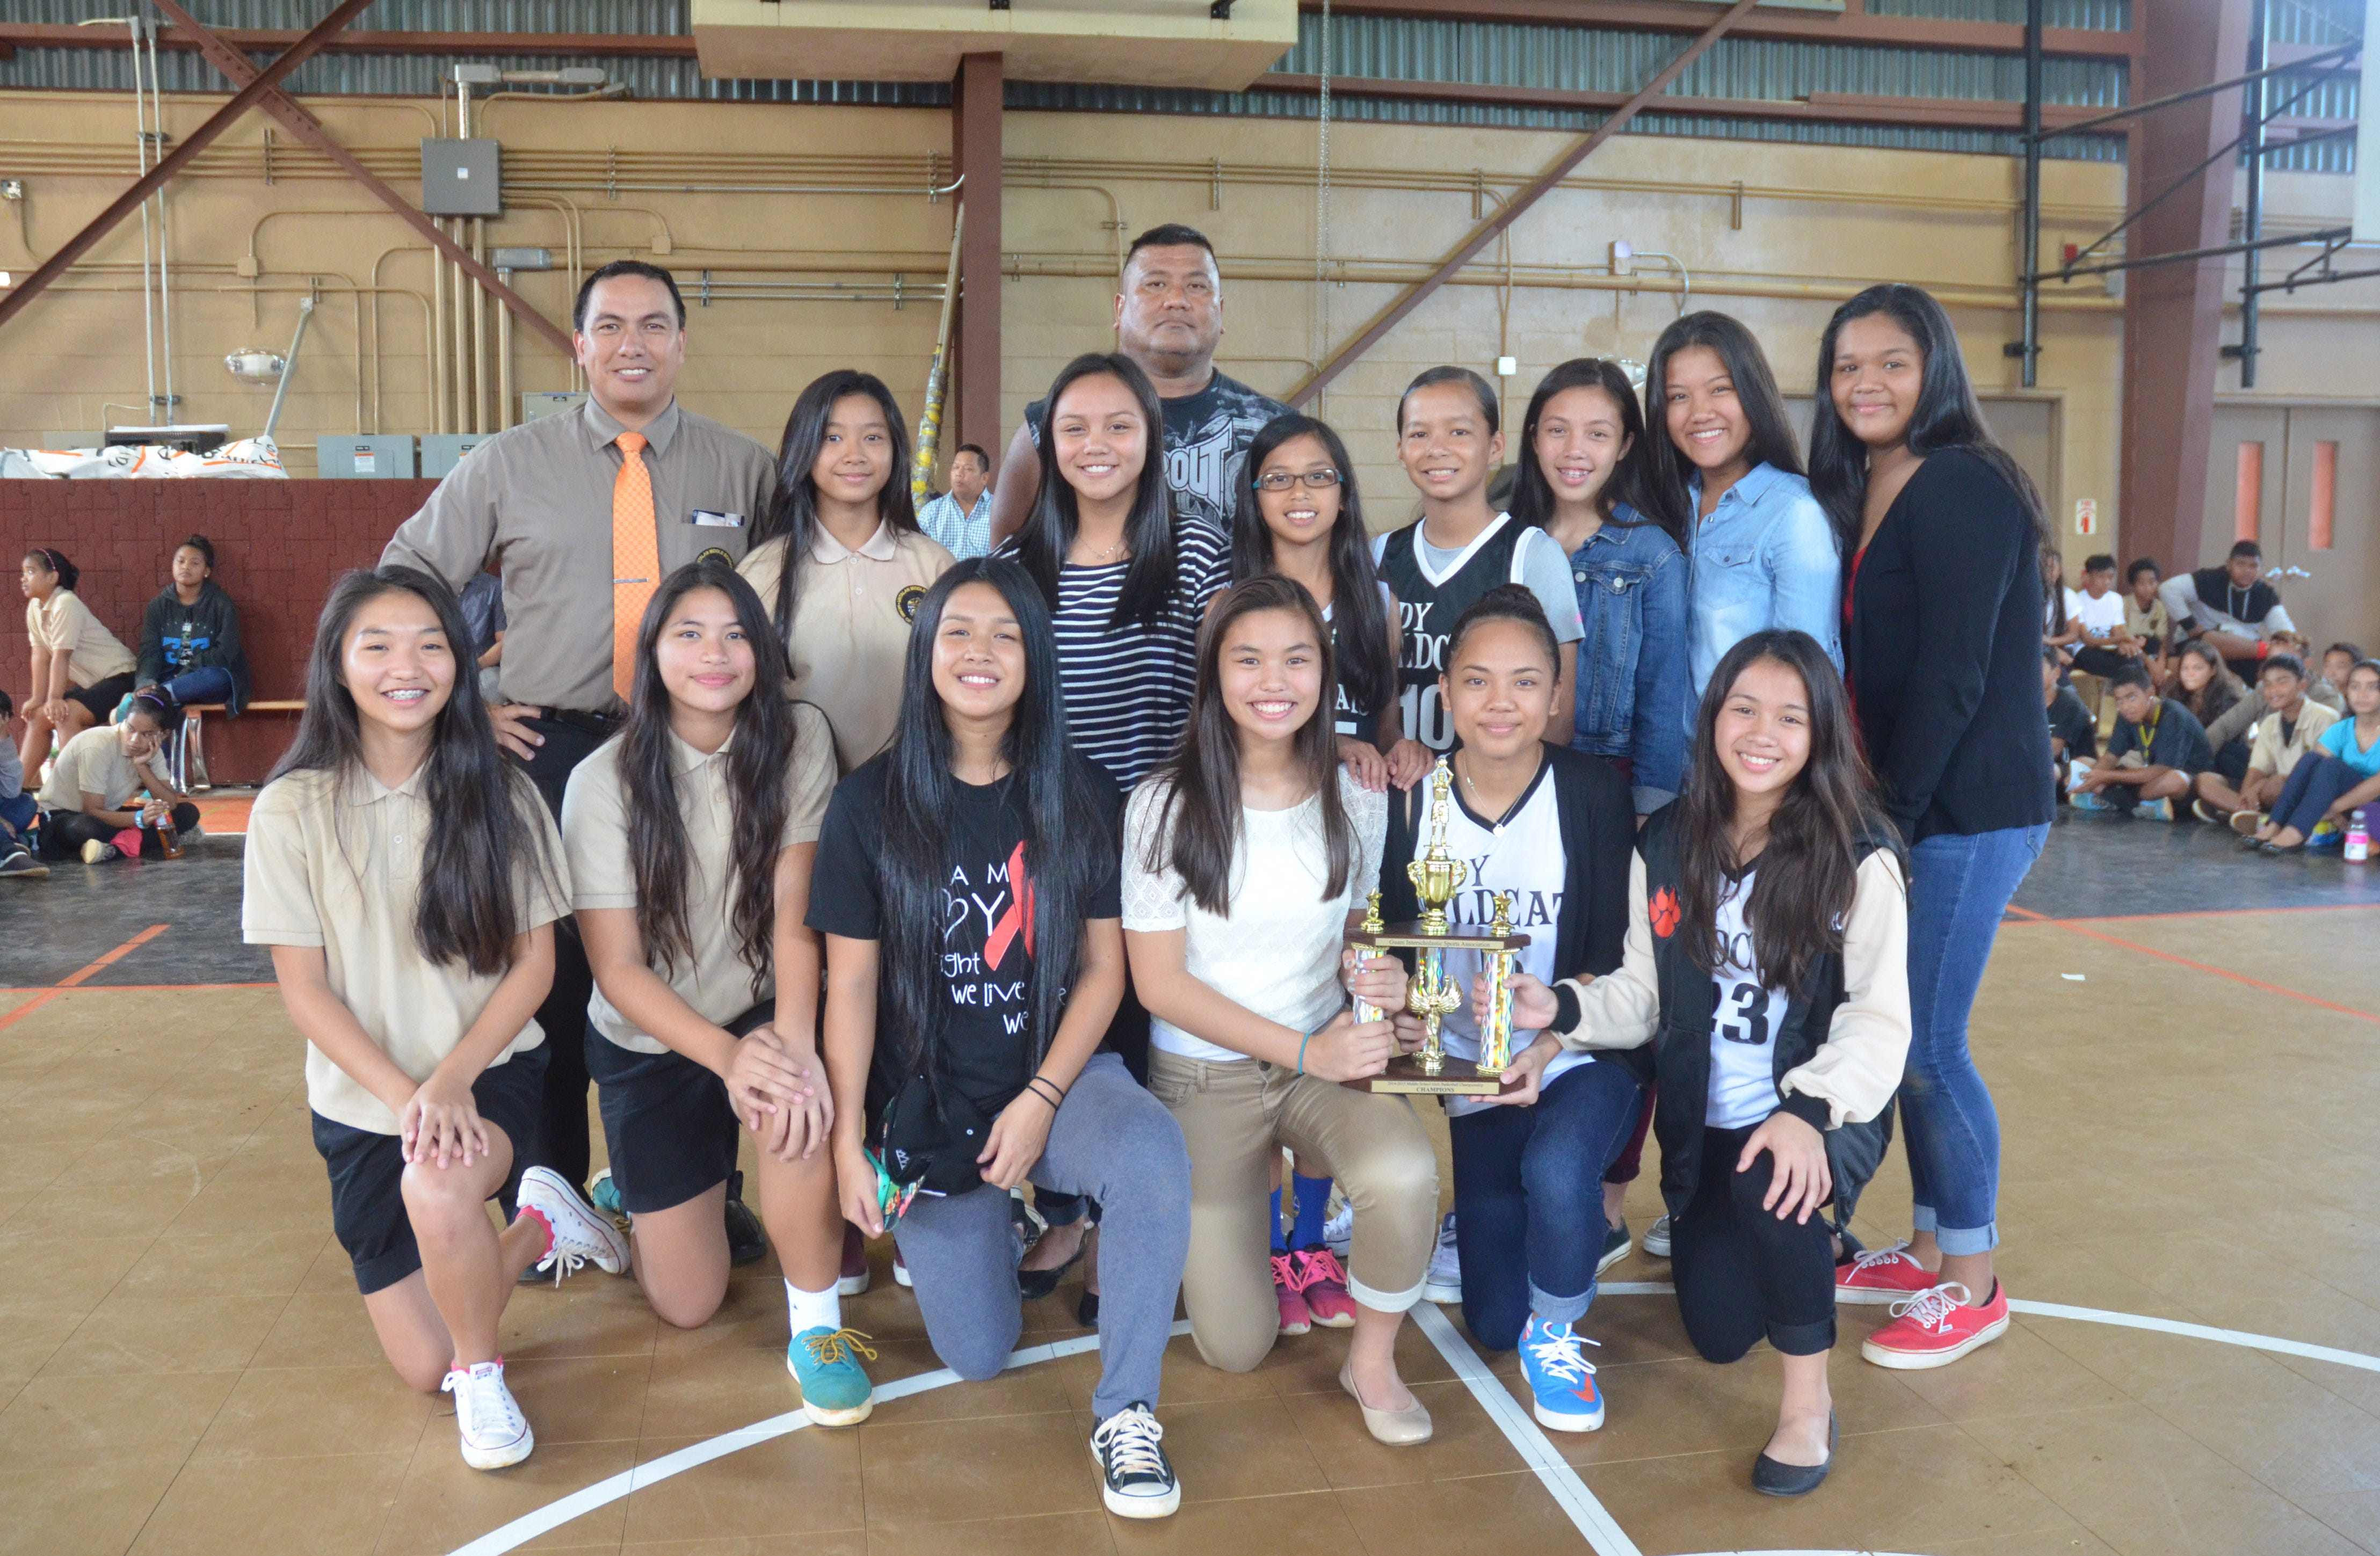 The Untalan Middle School Wildcats were presented with a trophy for winning the Guam Interscholastic Sports Association Girls' Basketball League championship in their gym on Friday, June 5, 2015. The Warriors were co-champions with the Benavente Middle School Roadrunners. Untalan won eight total championships during the 2014-2015 school year, including all six girls' sports, and were the GISA overall champions. The girls' A basketball team roster included, front from left, Eunchae Kim, Kirsten Santos, T'anna Dela Cruz, Taylor Aguon, Isla Quinata, Bila Aguon, second row from left, principal Jim Reyes, Jamie Mejia, Janisha Santos, Alana Salas, Aubri Chargualaf, Kiara Pangelinan, Mikayla Castro, Breani San Nicolas and, back, coach Ken San Nicolas.